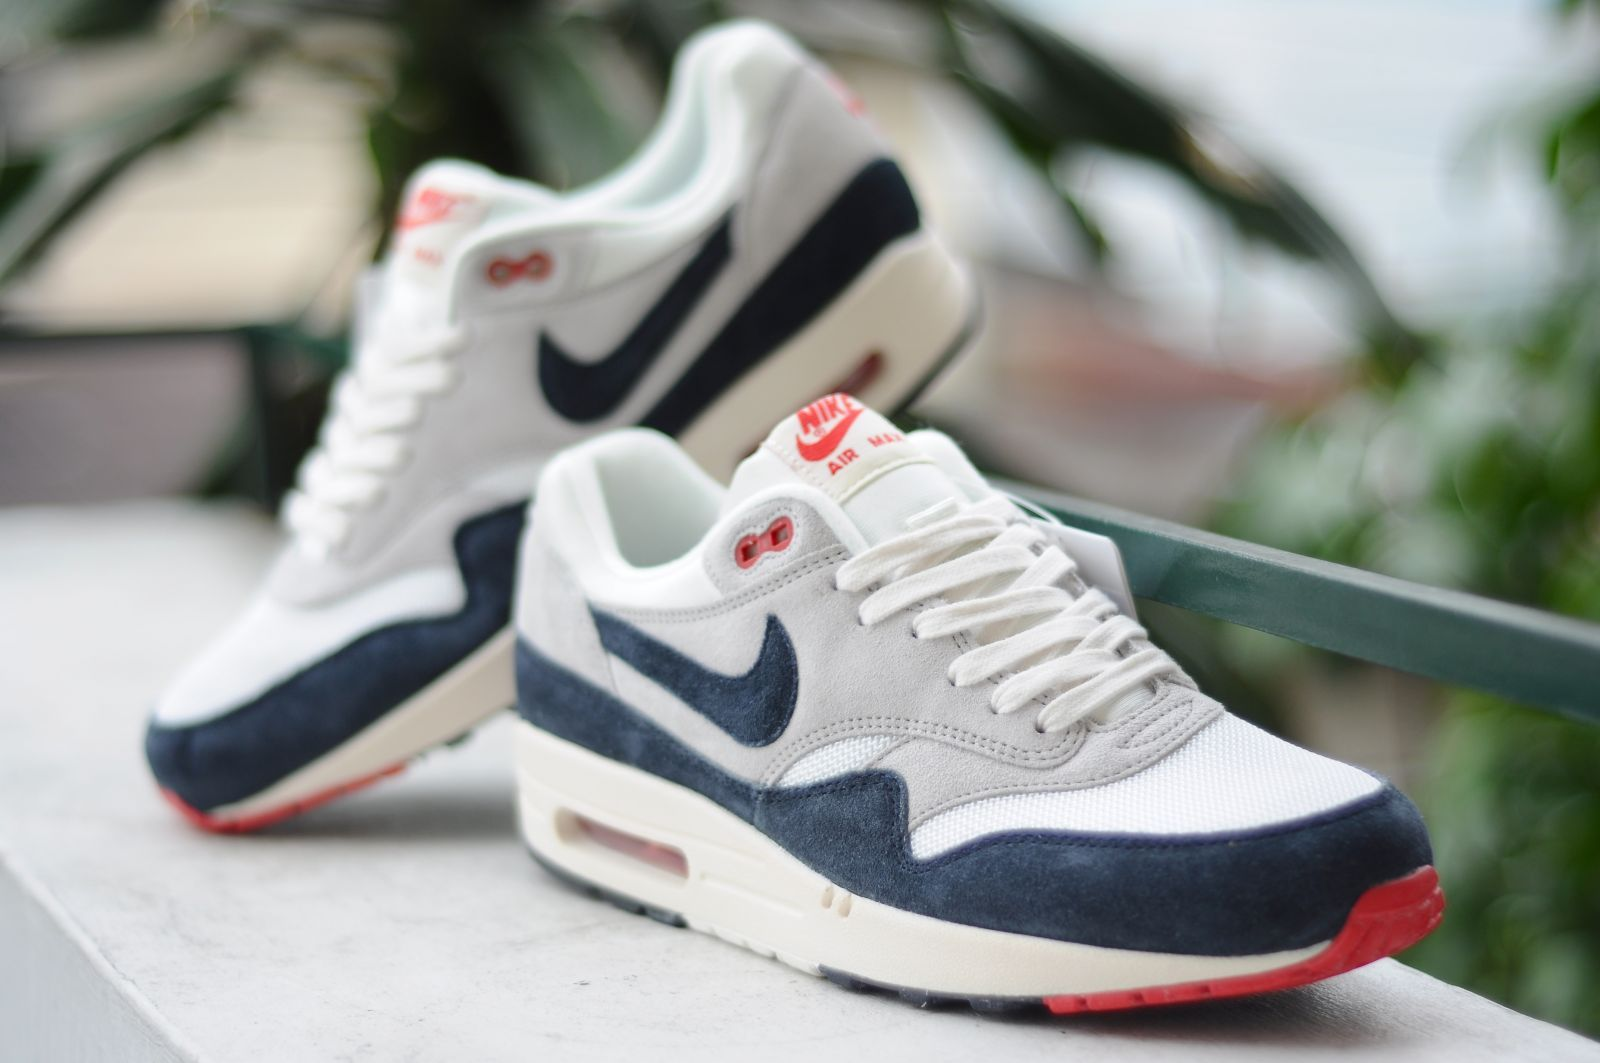 kmhsf 1000+ images about Air Max 1 on Pinterest   Air max 1, Nike air